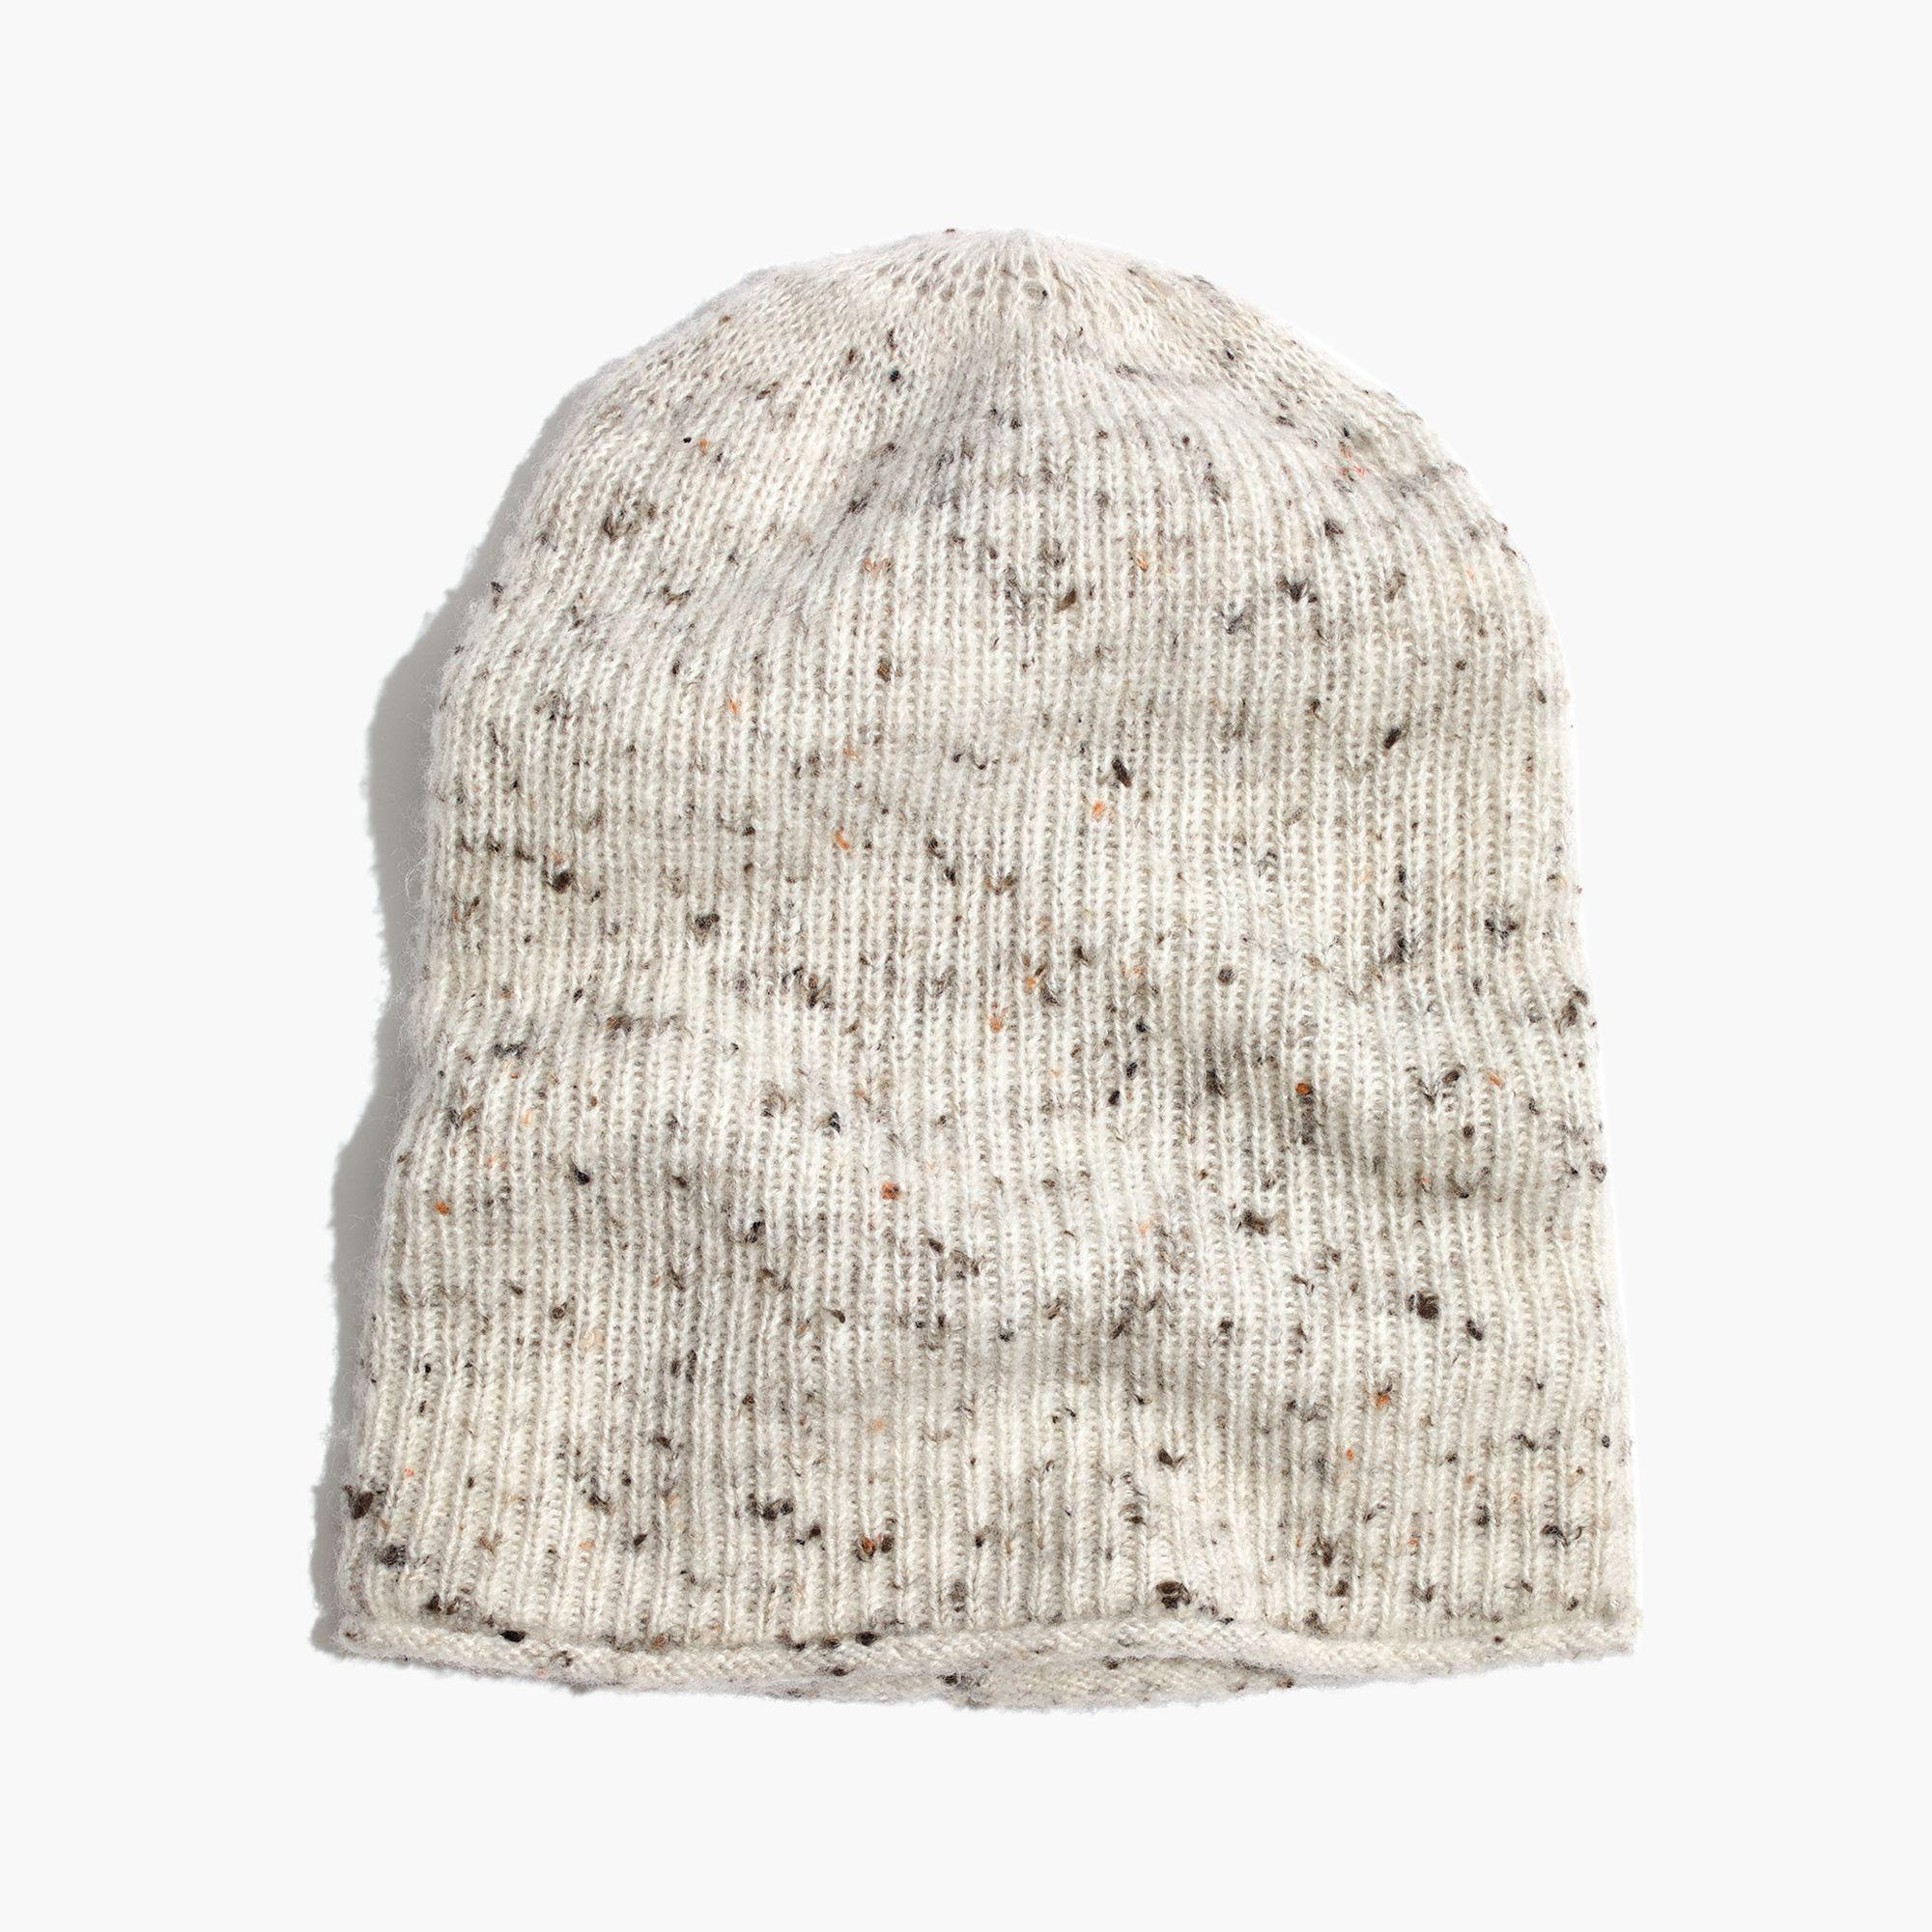 21c960e5bbd Madewell Donegal Kent Beanie - Lyst